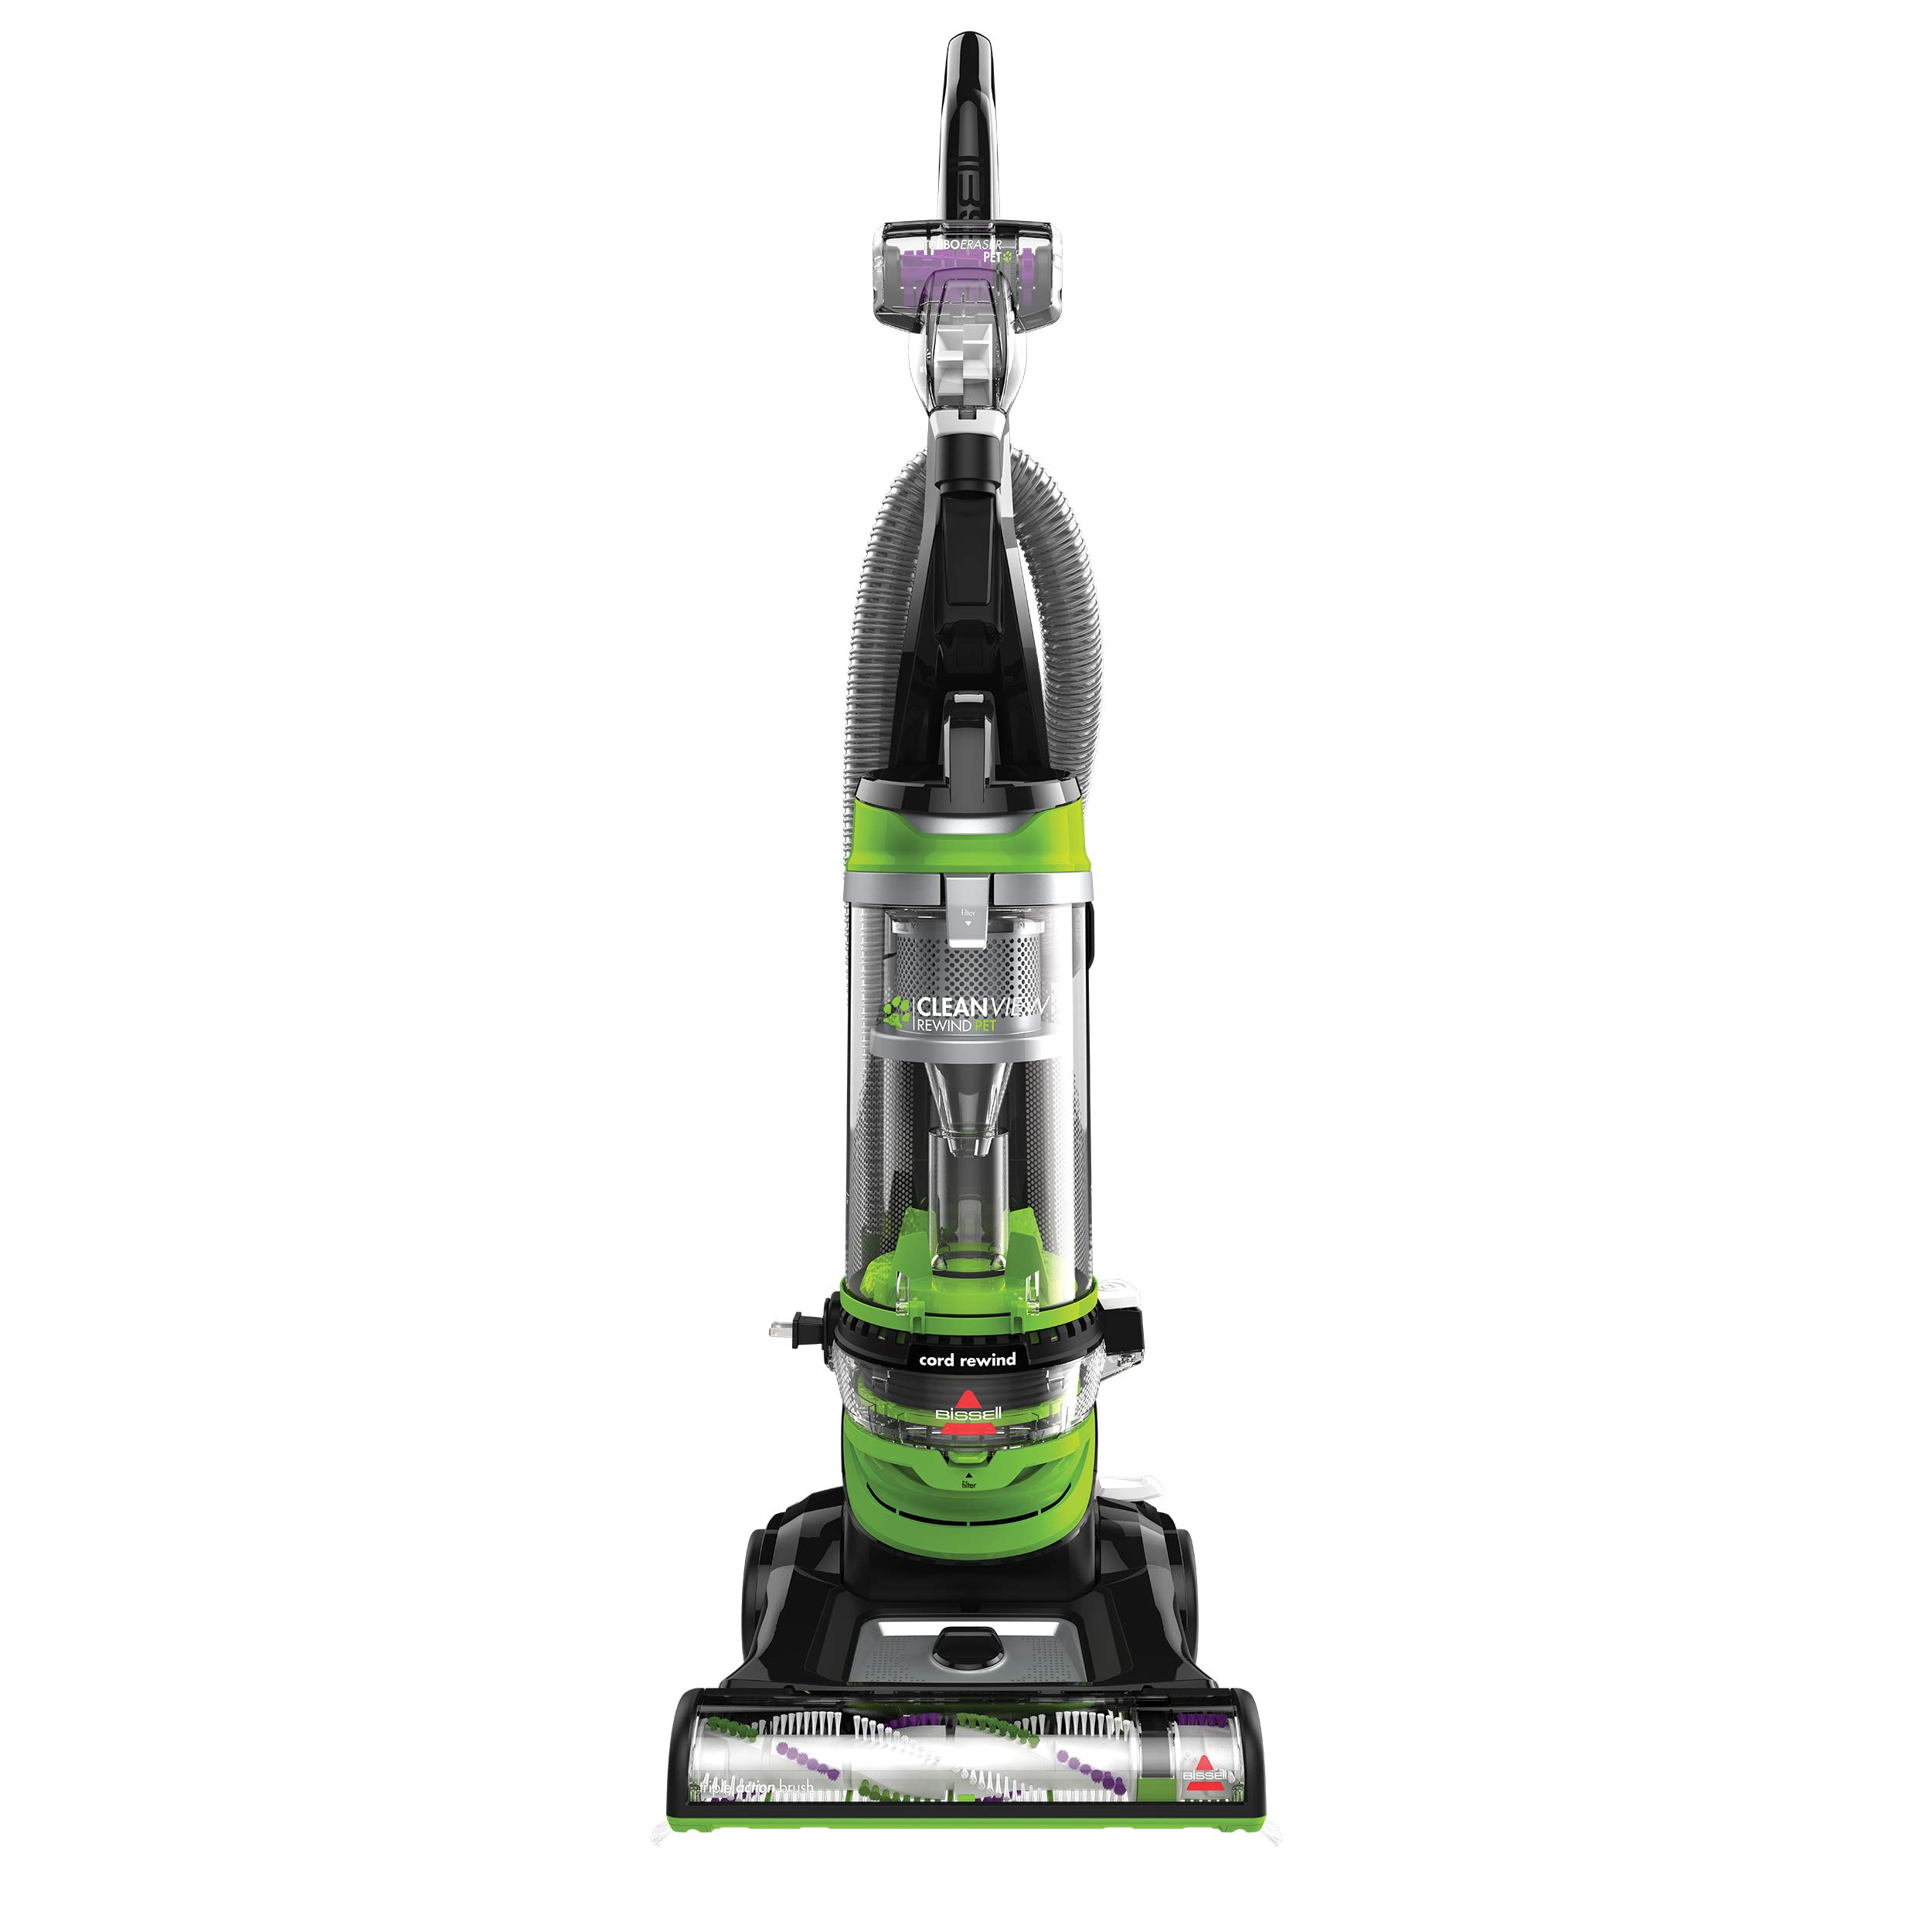 BISSELL Cleanview Rewind Pet Deluxe Upright Vacuum Cleaner, 24899, Green by Bissell